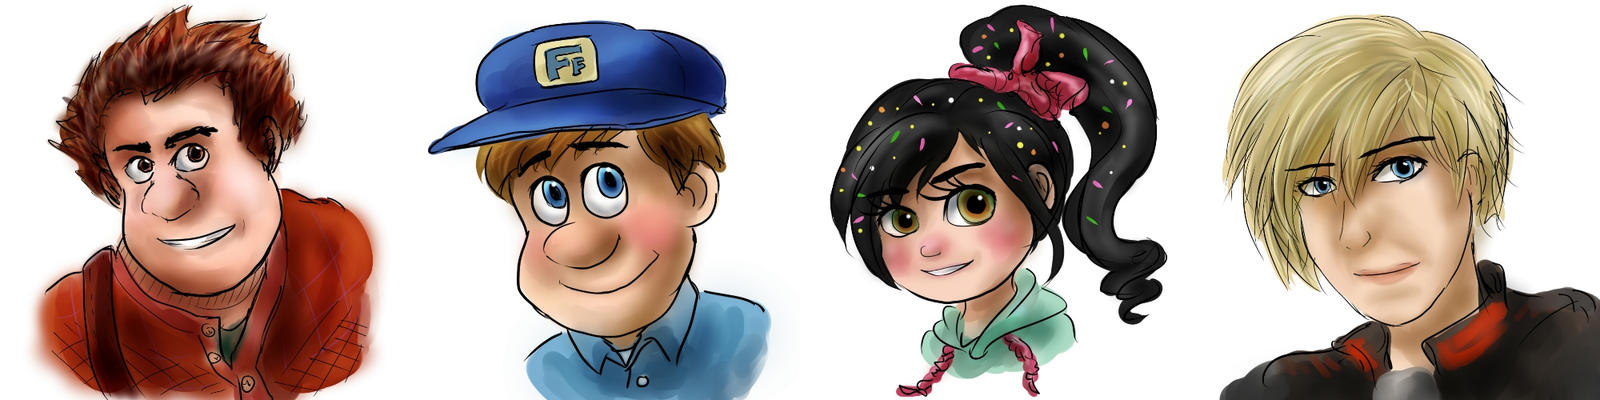 wreck it ralph doodles by Pacthesis